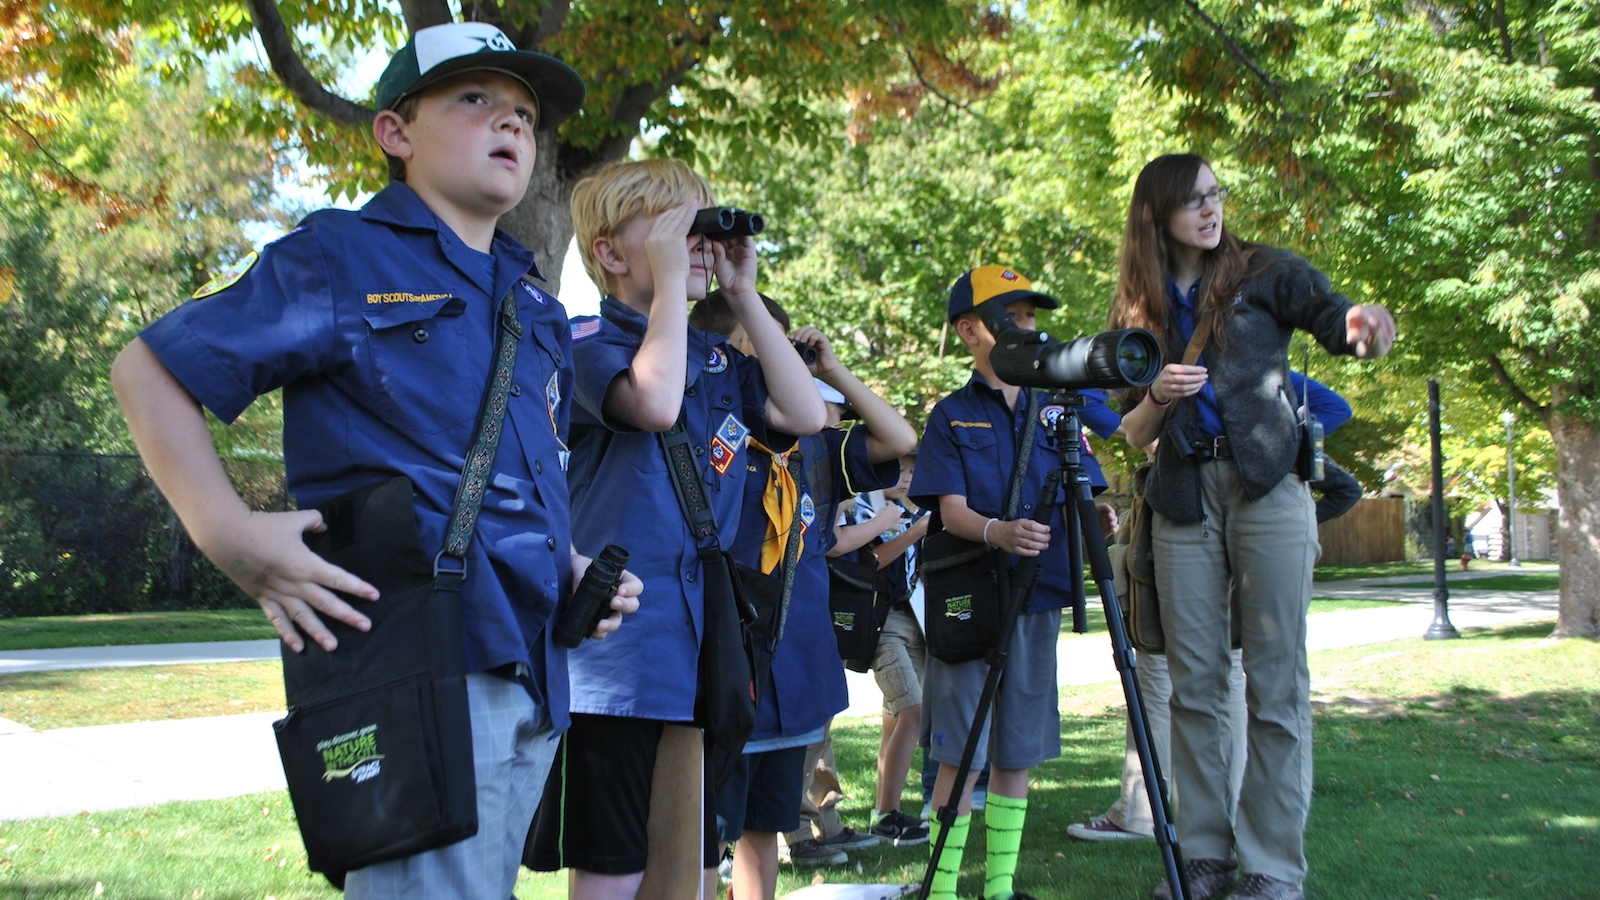 Cub Scout and Scouts BSA Workshops